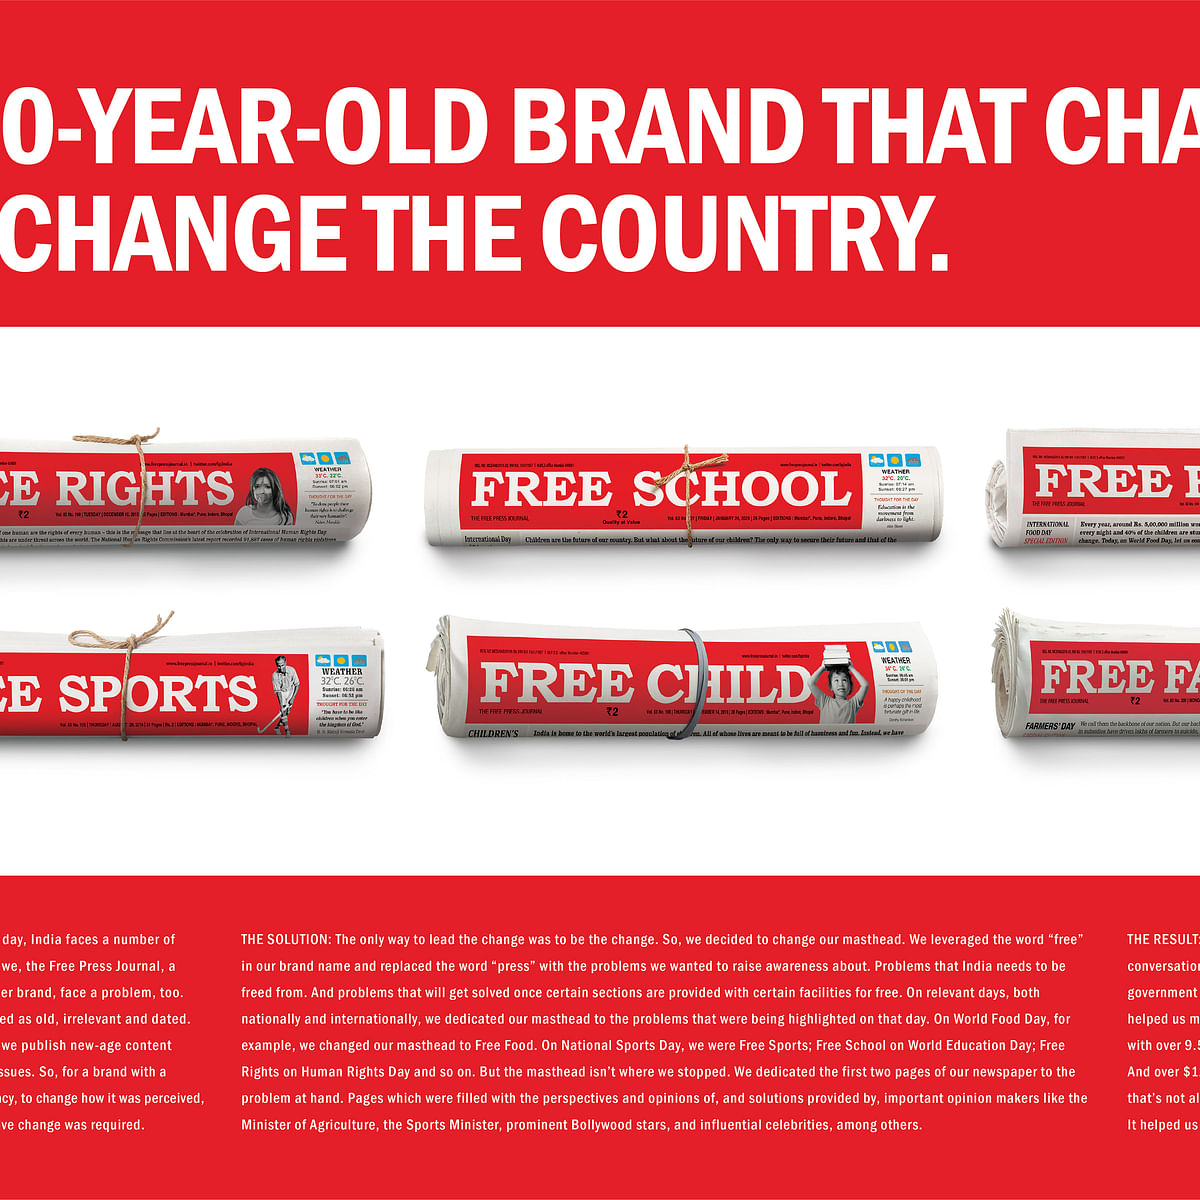 Free Press Journal's 'Free initiatives' campaign wins gold at Adfest 2020